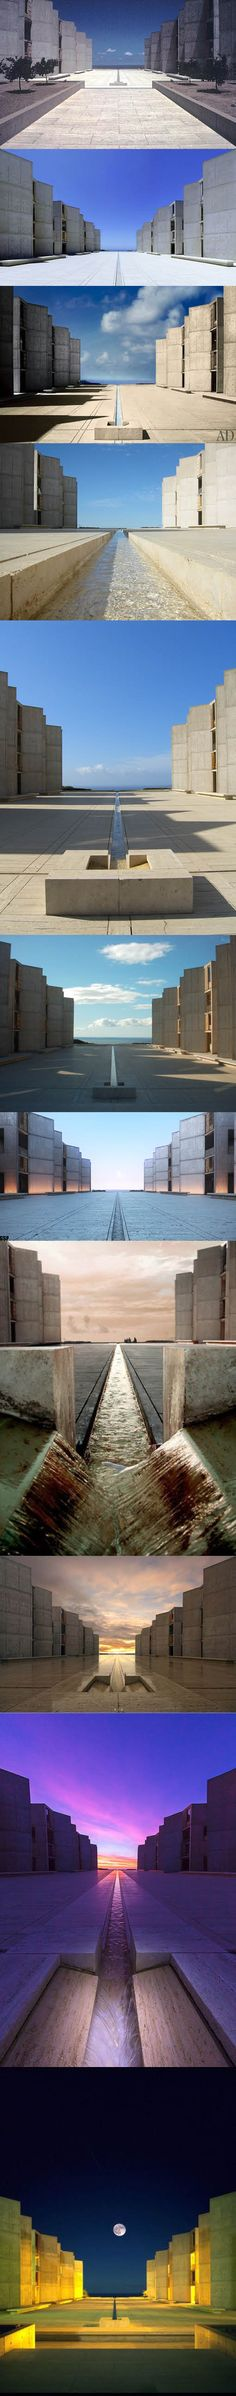 Salk Institute for Biological Studies, La Jolla CA | Louis Kahn